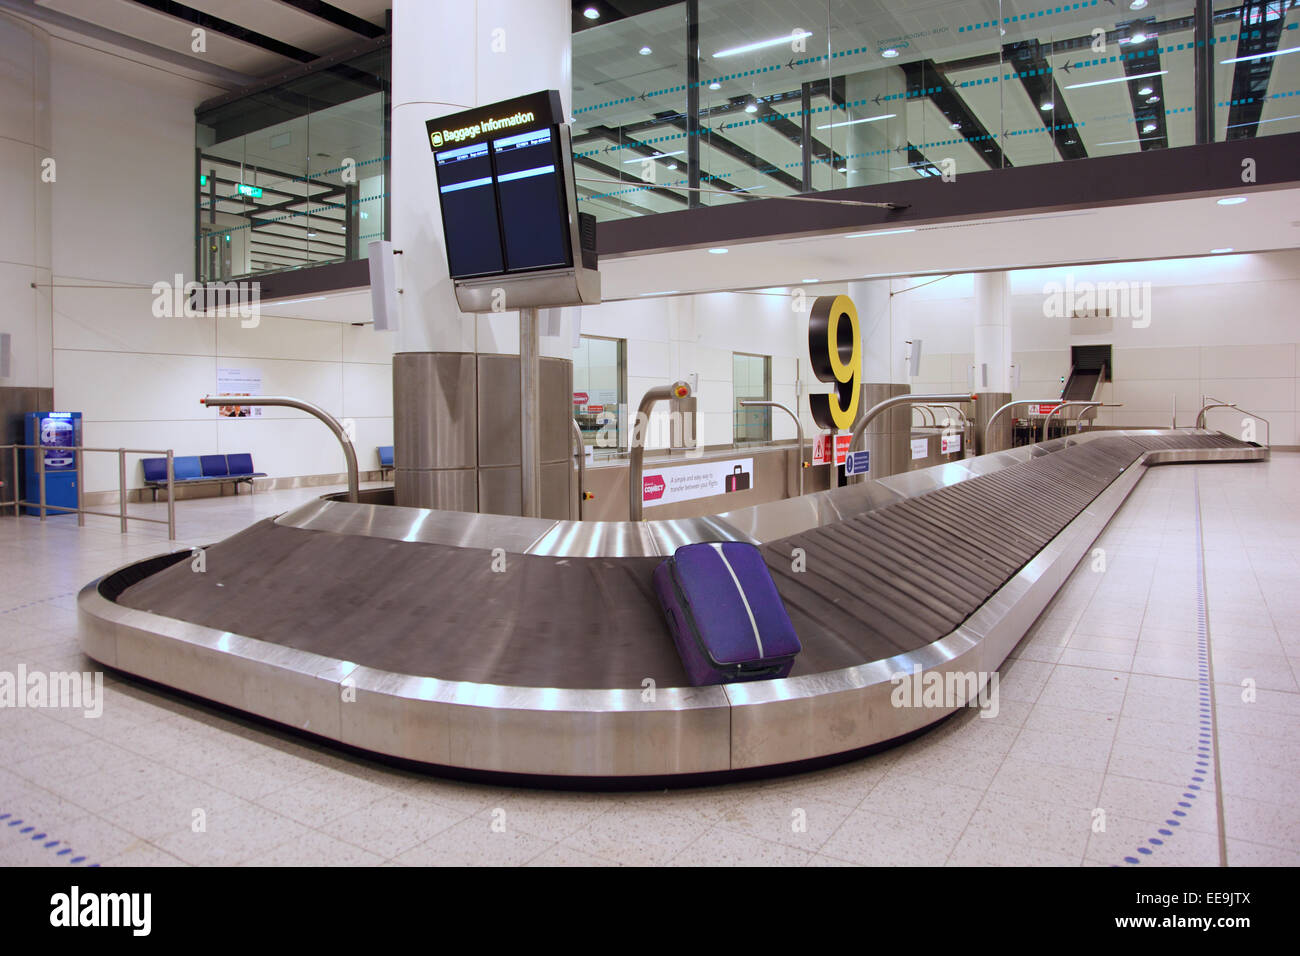 """dating again baggage reclaim Dating offers shop garden  i t may not signal an end to queuing at baggage reclaim  """"bad weather had caused hold-ups in the system and once again,."""